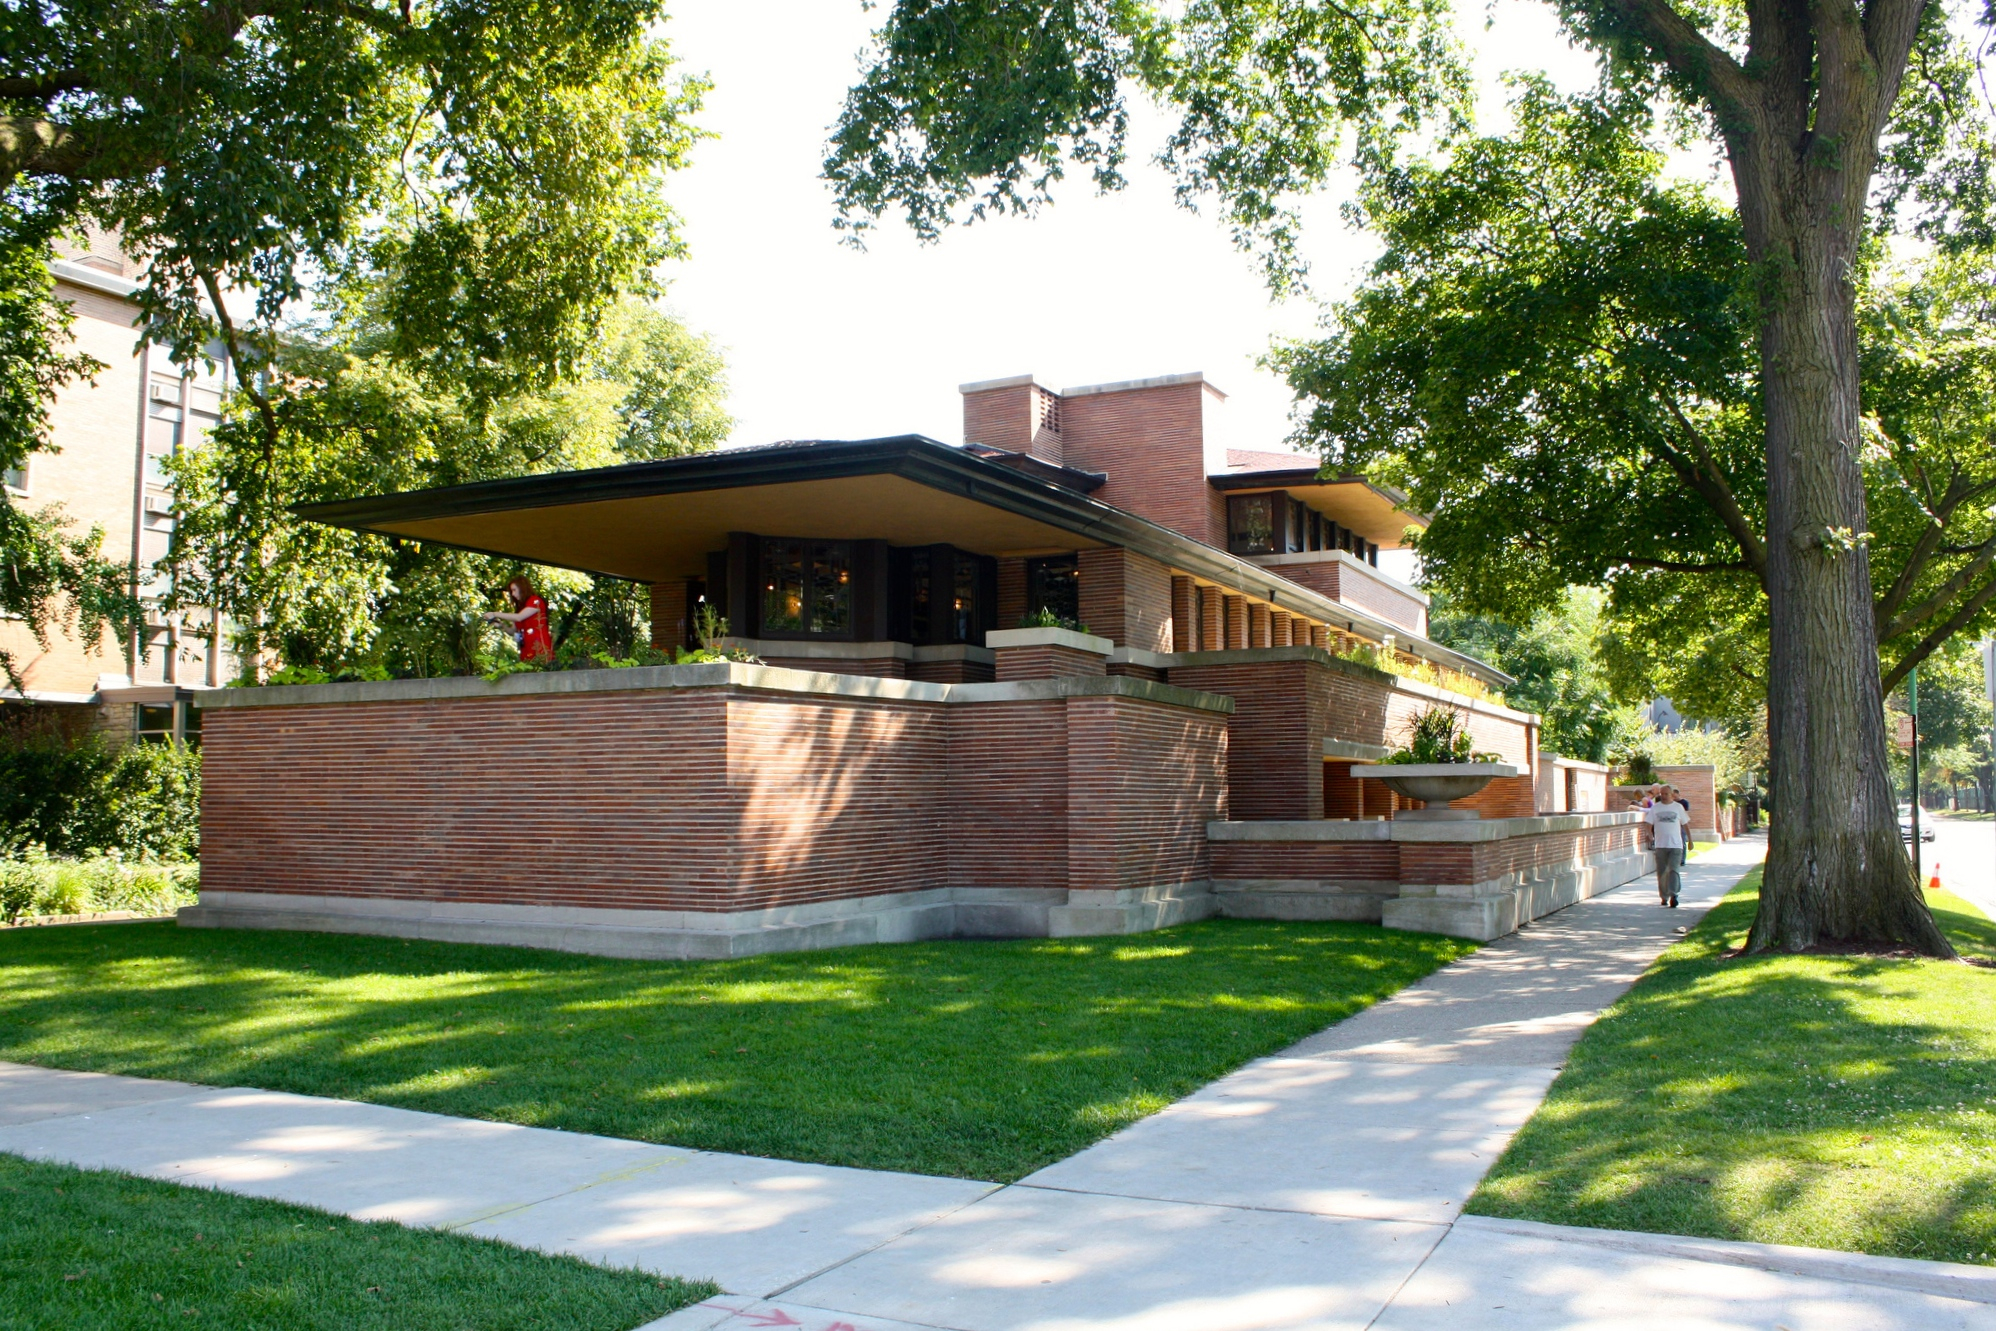 Happy hours returning once again to Frank Lloyd Wright's iconic Robie House